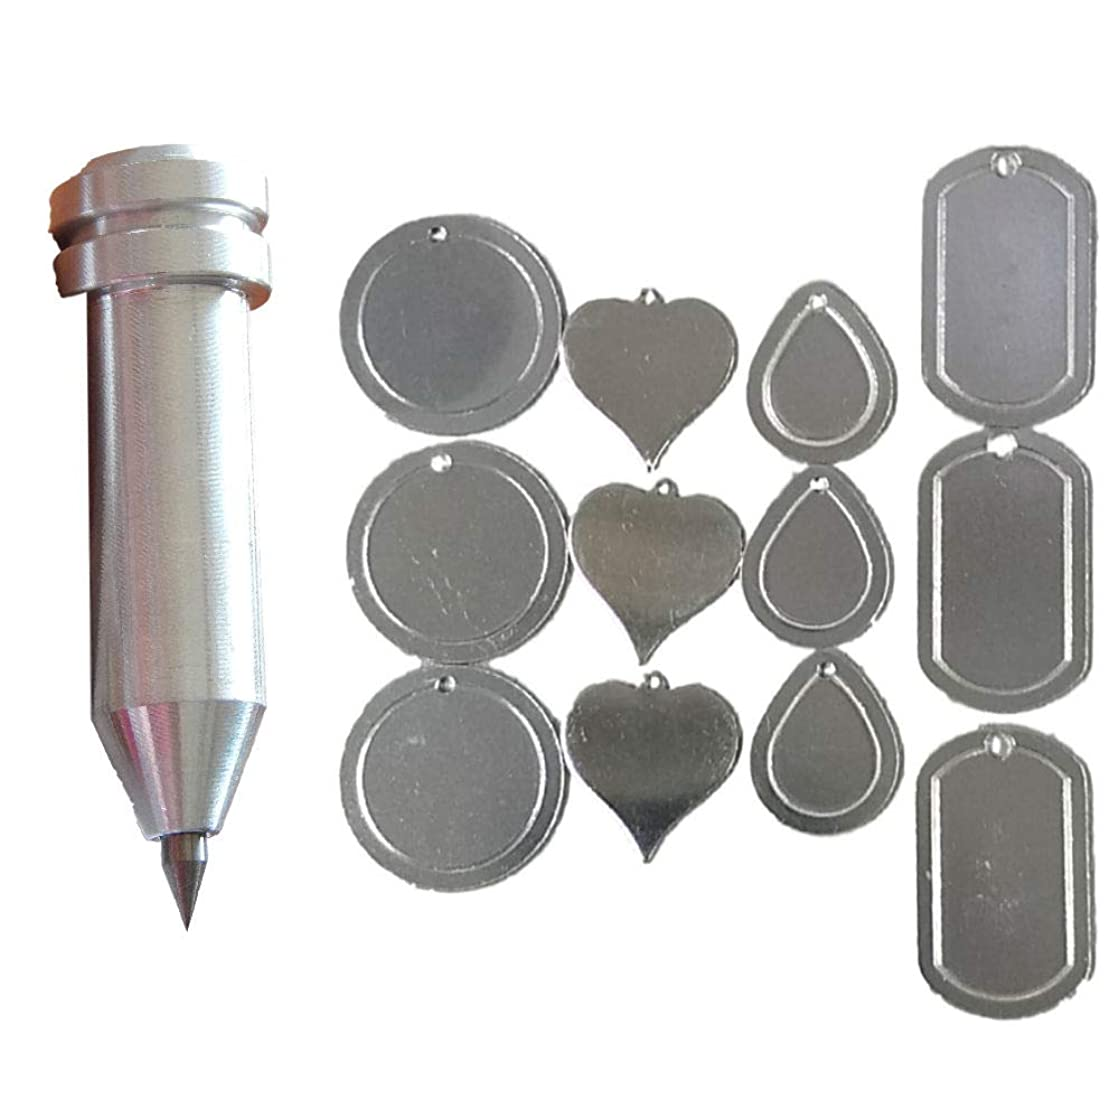 Precision Engraving Tool for The Cricut Maker and Explore by Chomas Creations and 12 Stamping Blanks (13 Pieces) (Set 1)